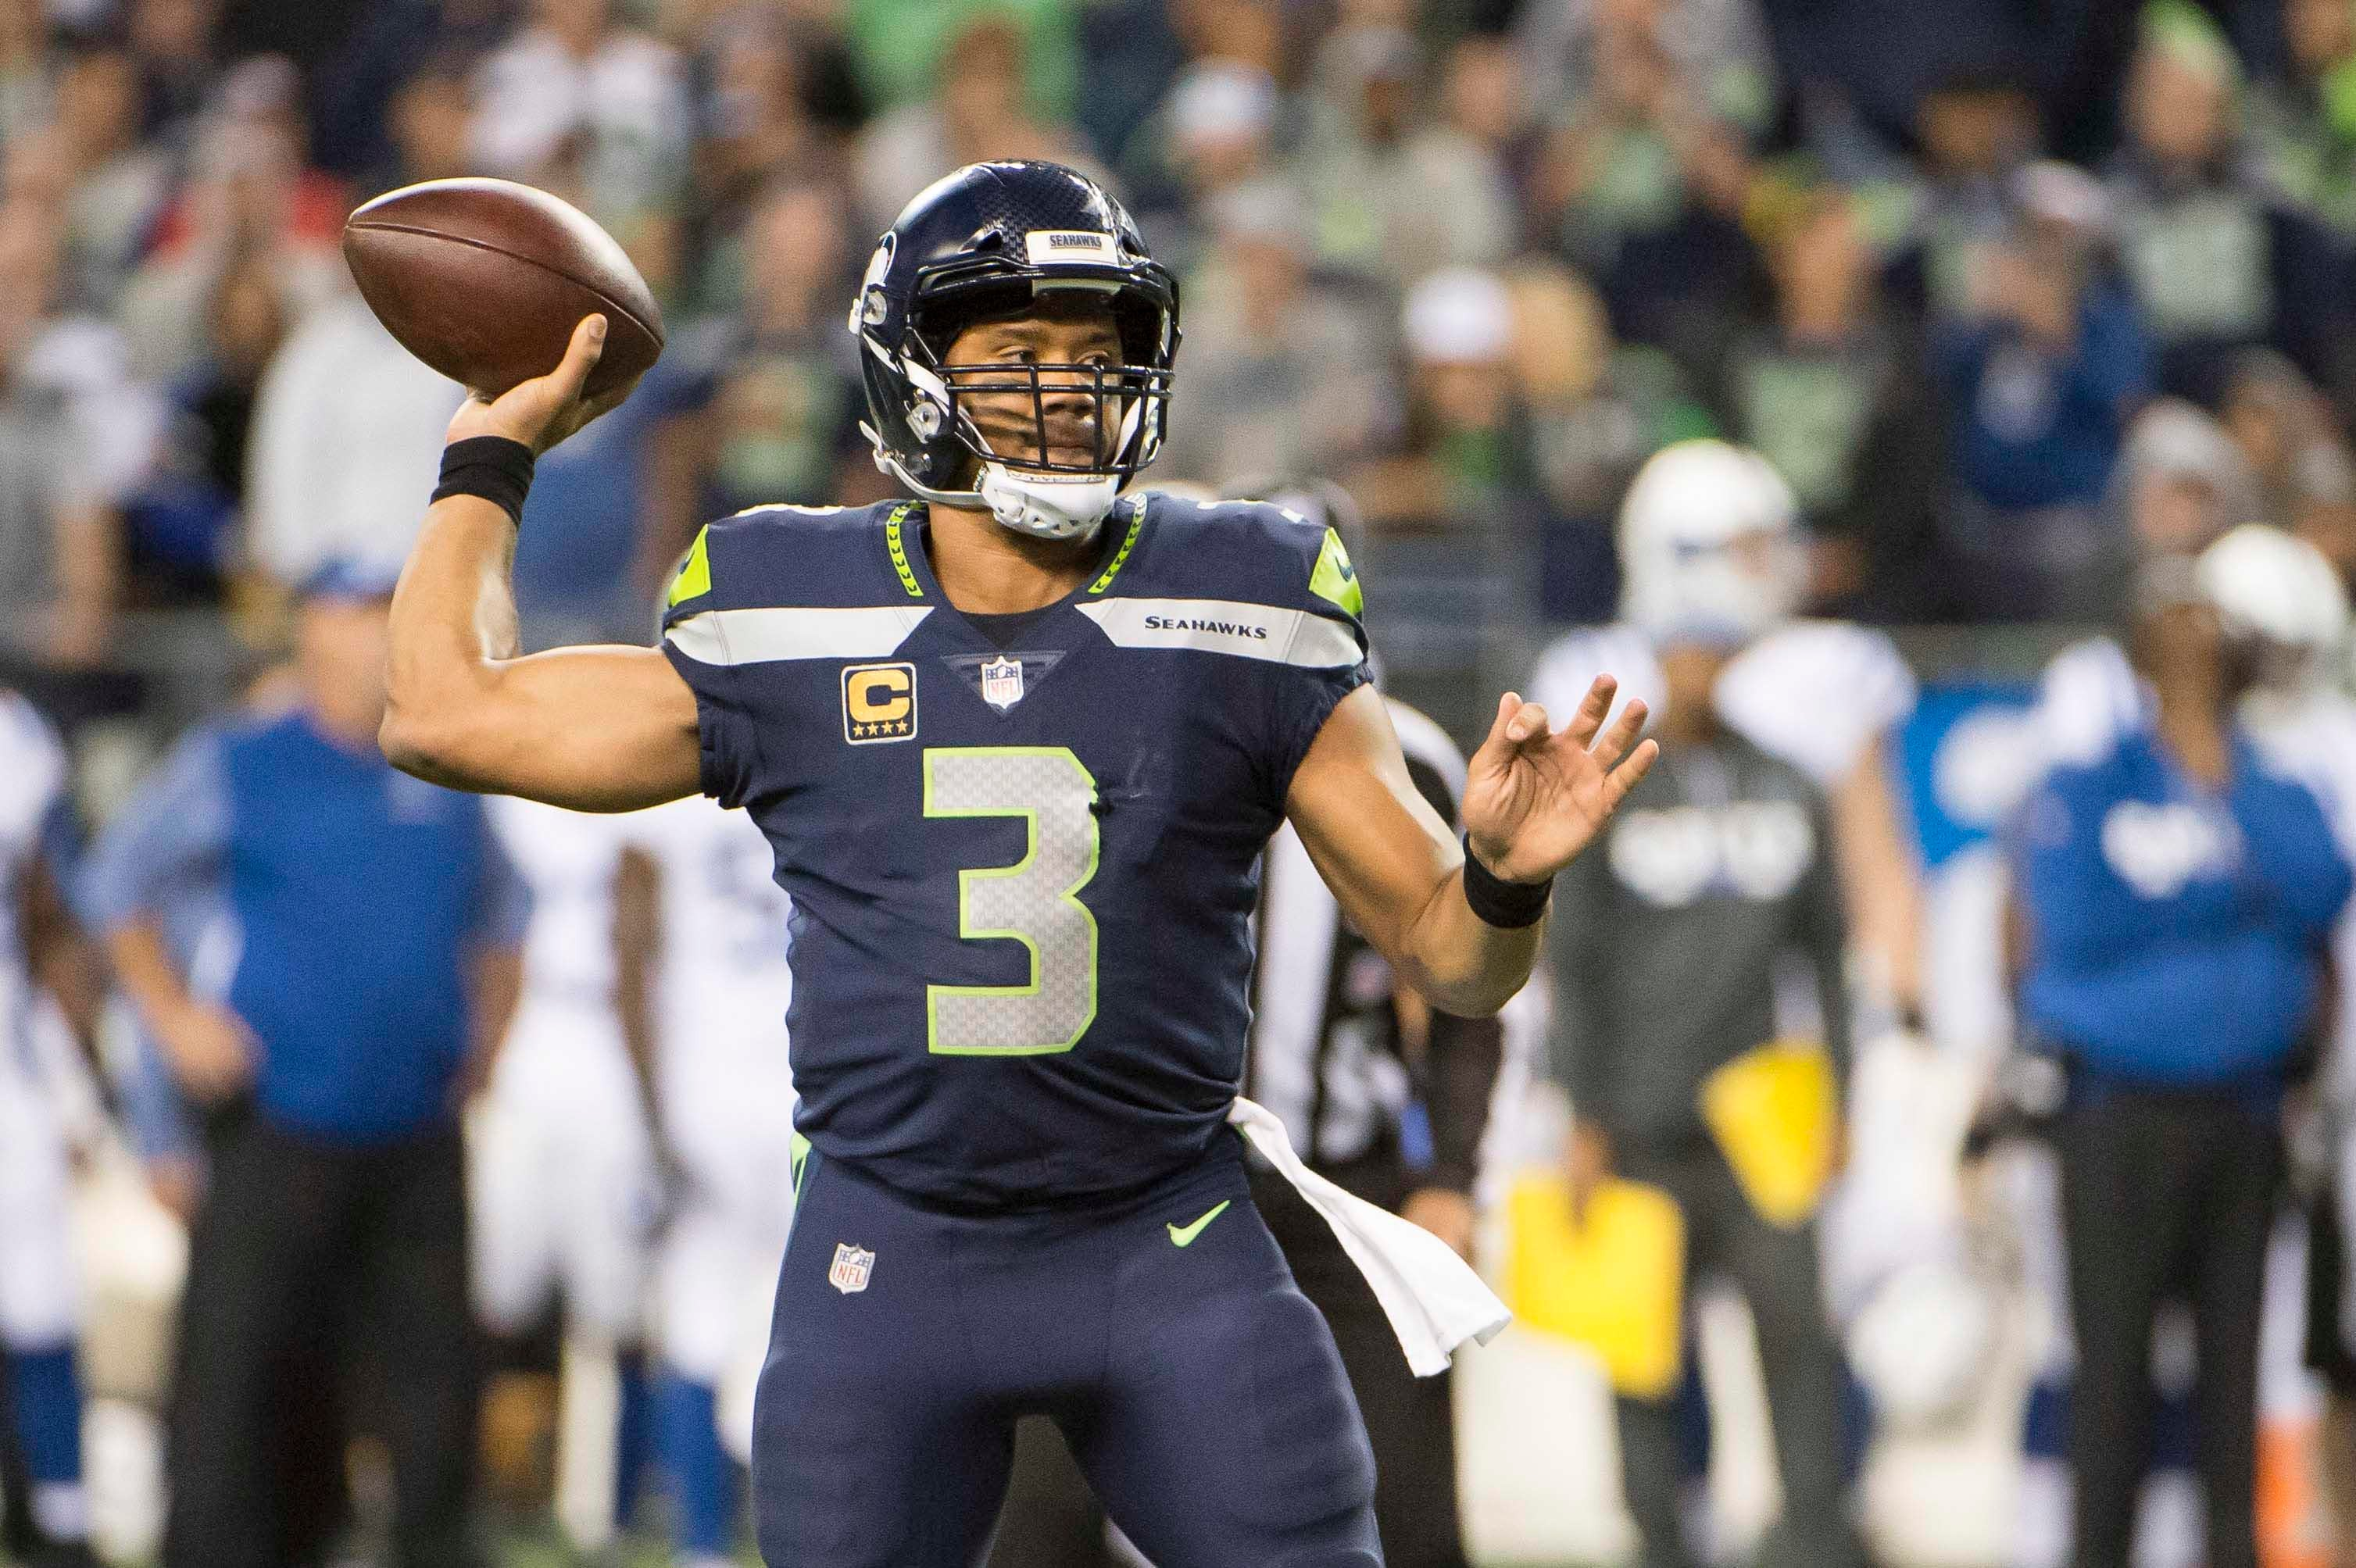 Seahawks offense could use game against Giants to power a big second half